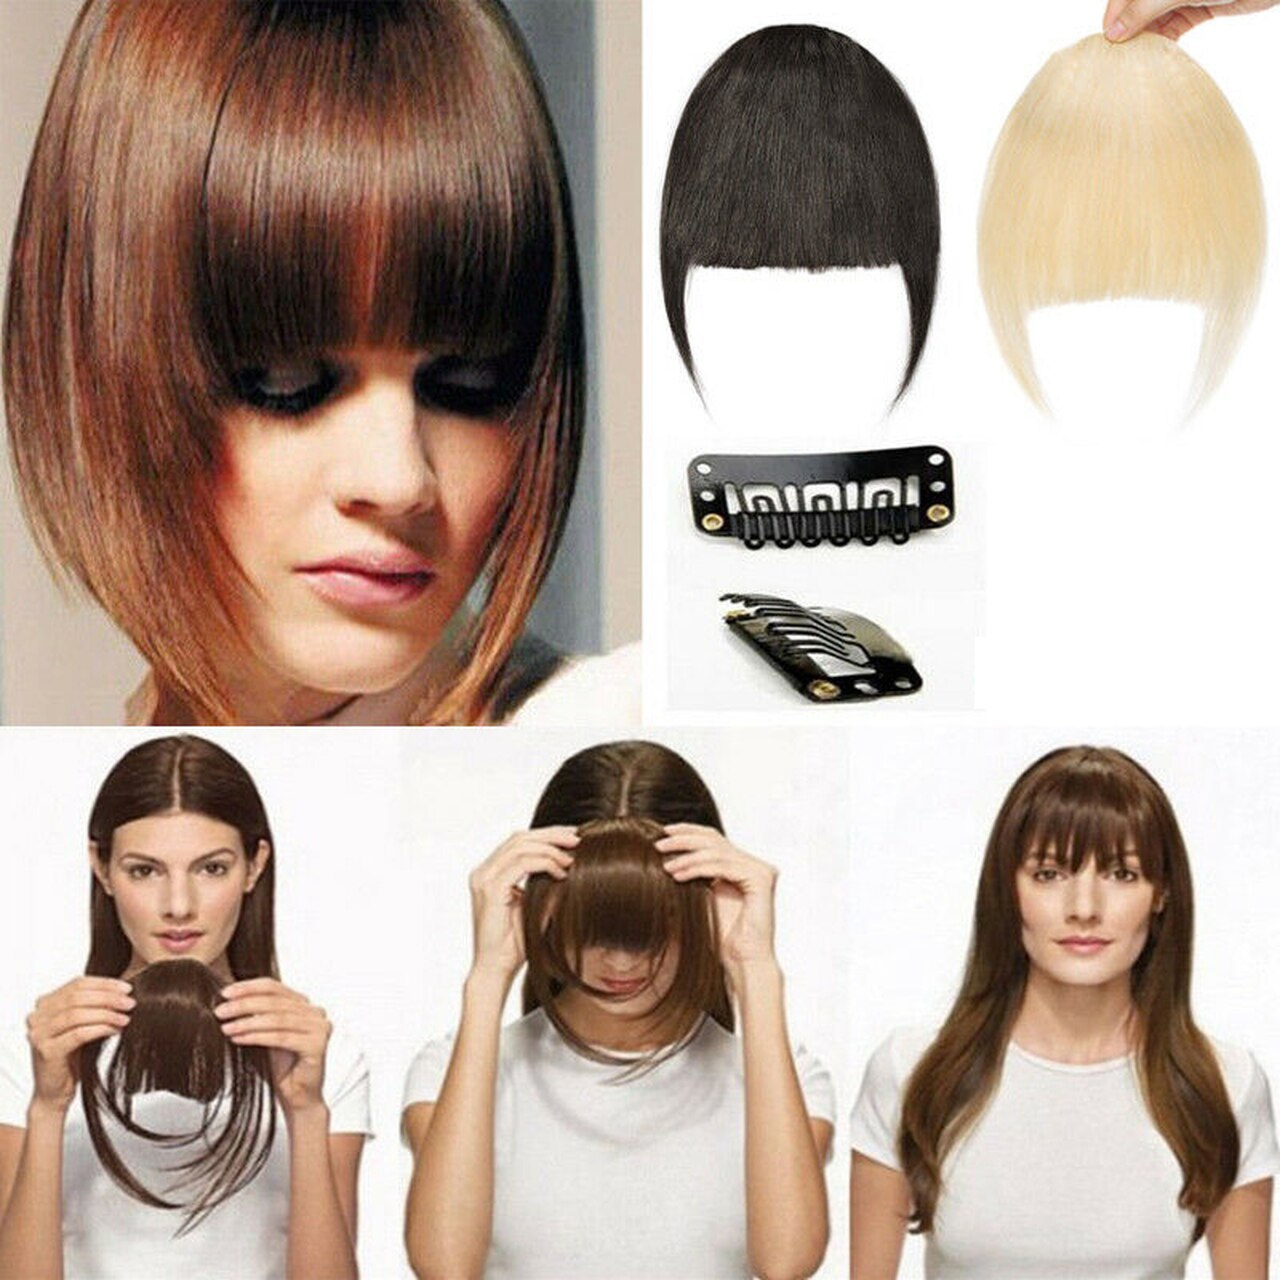 Clip In Human Hair Extensions Neat Bangs Fringe Remy Human Hairpiece 25g Or 50g 1